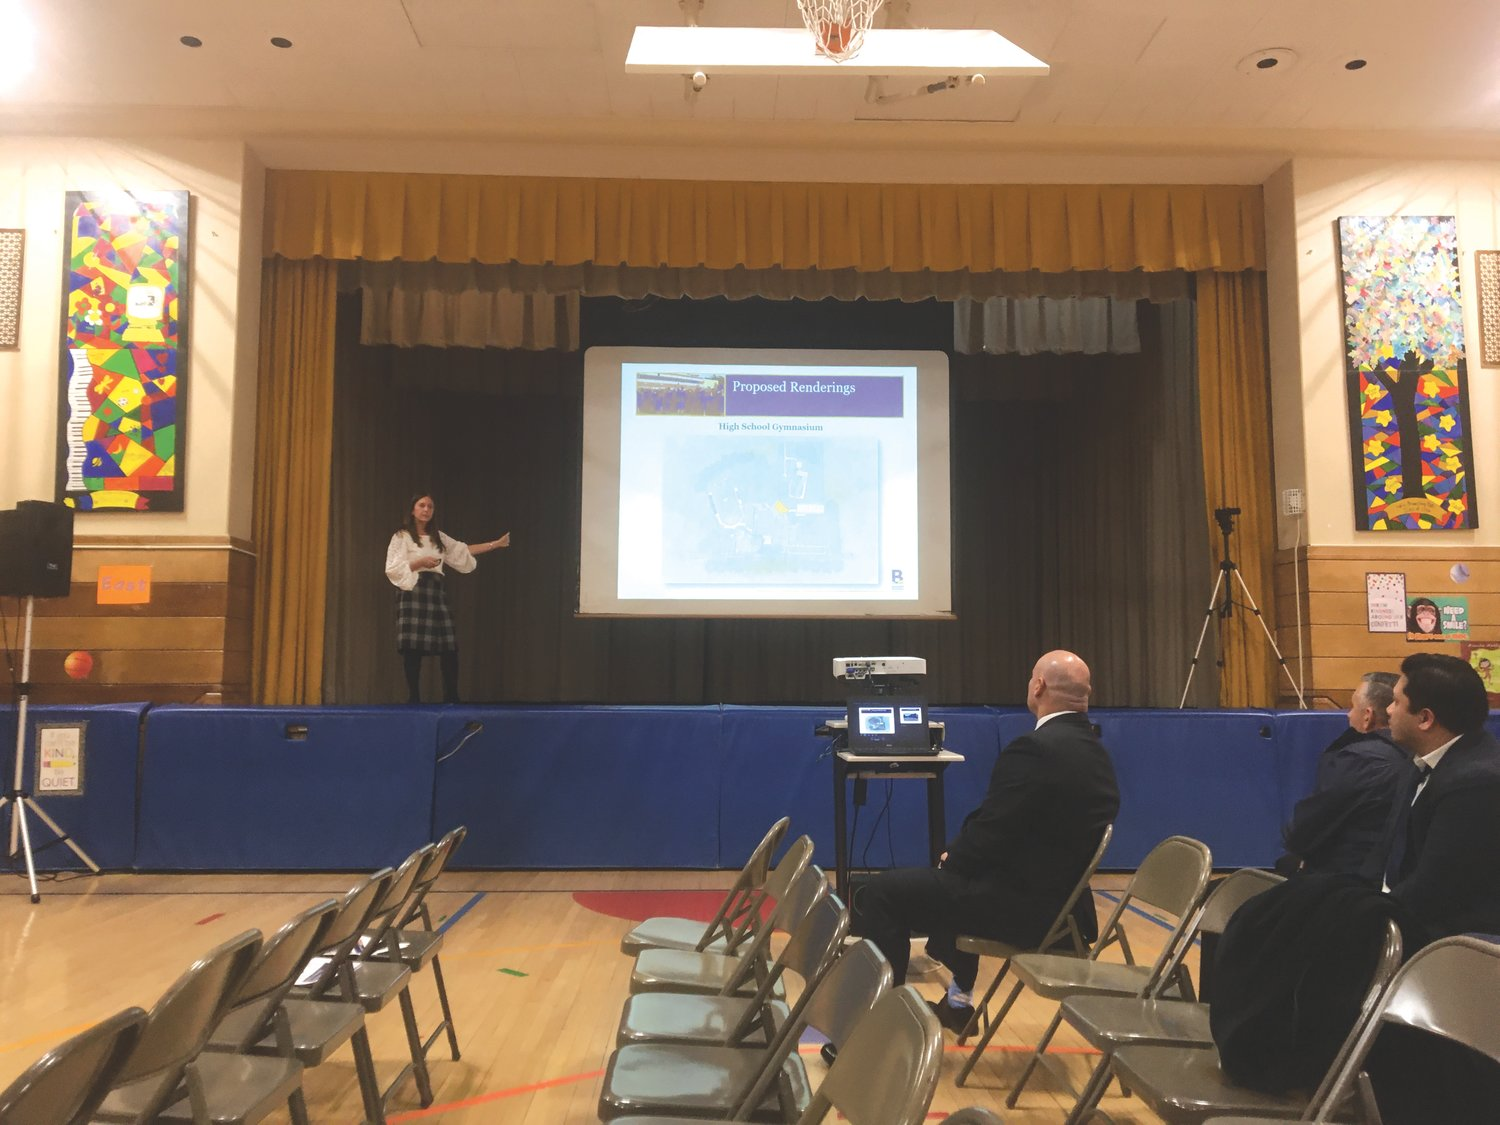 Superintendent Dr. Shari Camhi presented plans for Innovation 2020 at a Jan. 8 school board meeting at Plaza Elementary School.